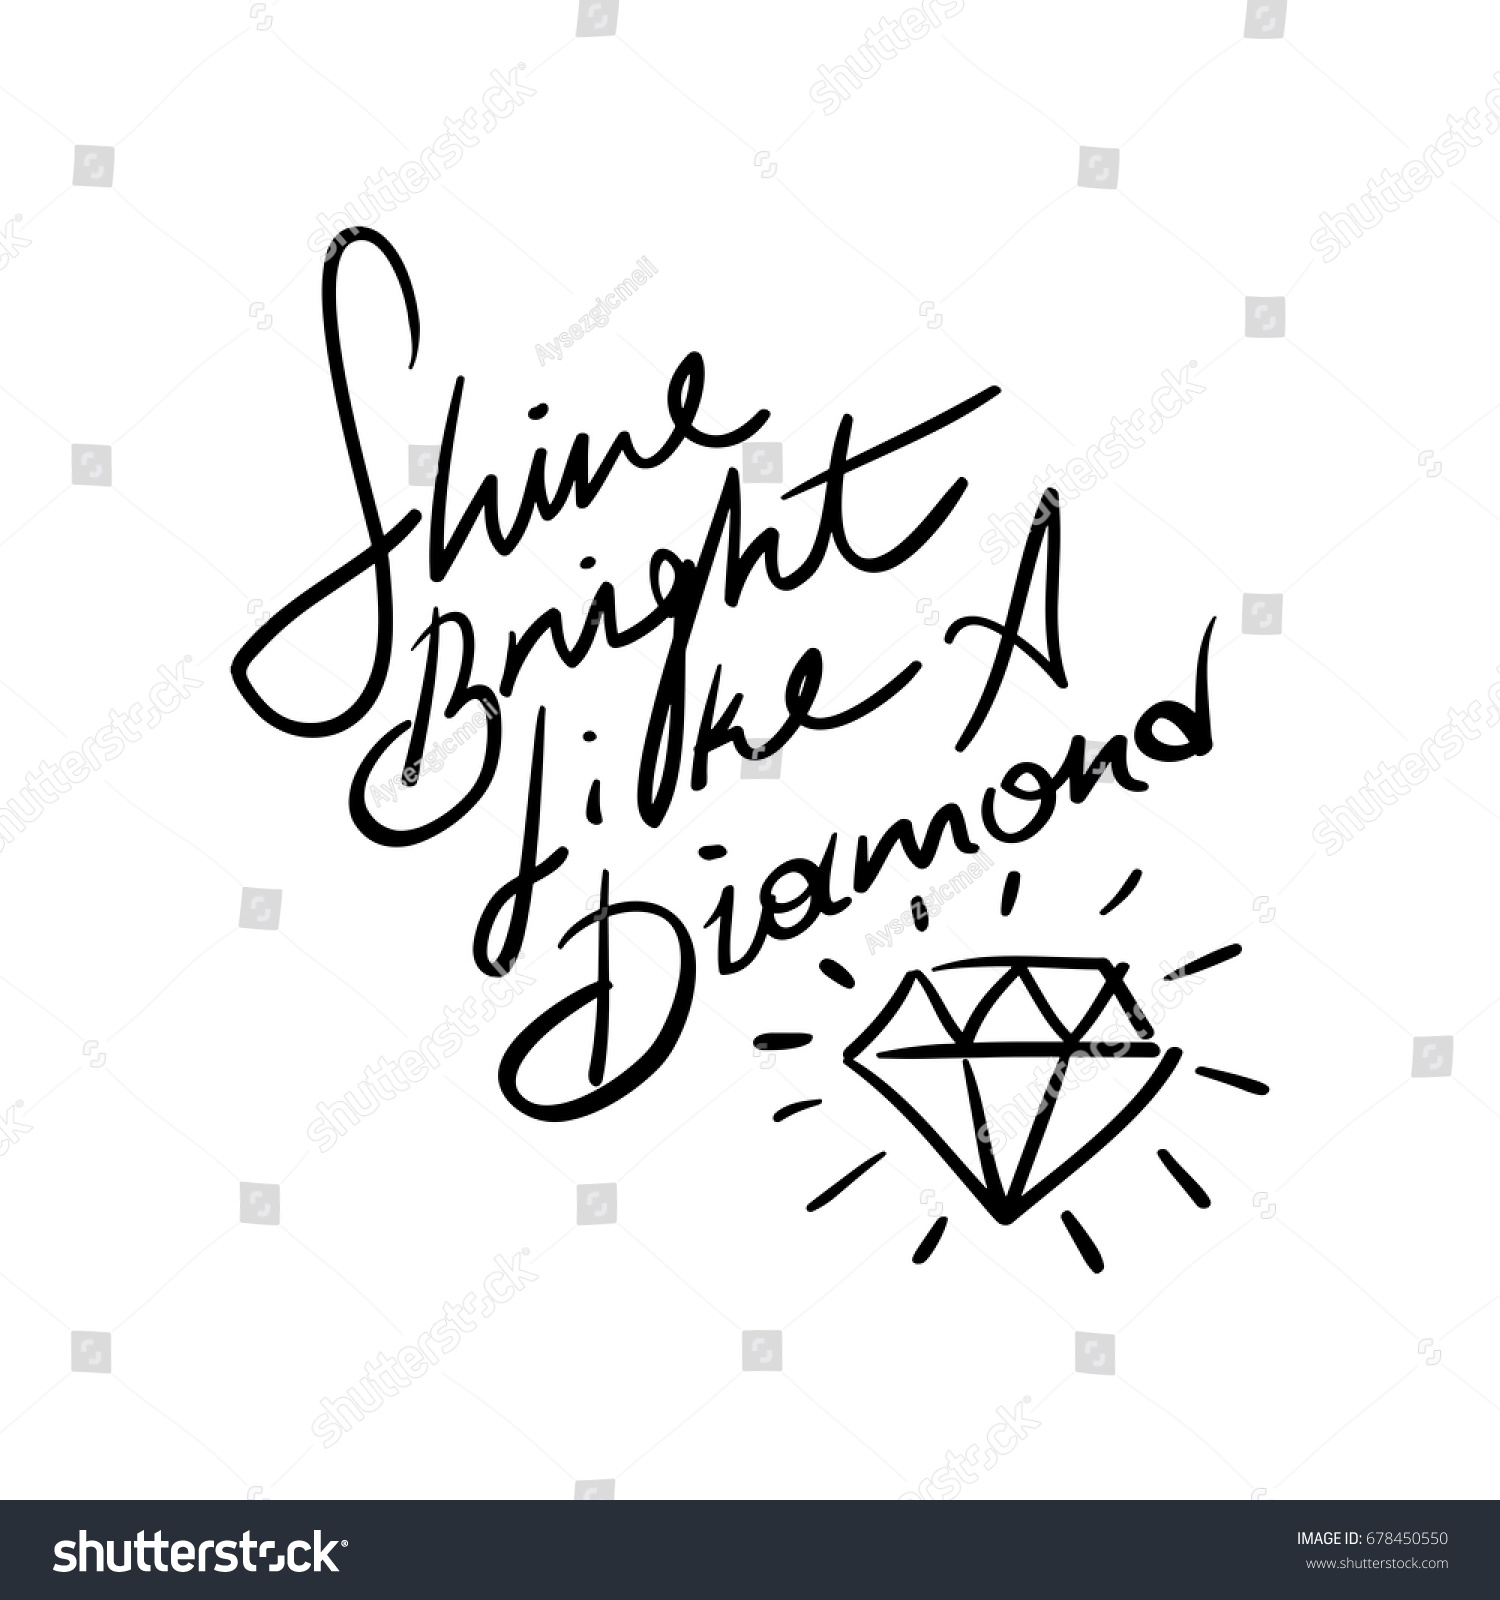 image diamond exceptionally of pressure just is charcoal quotes piece handled that positive quote a stress quotation well